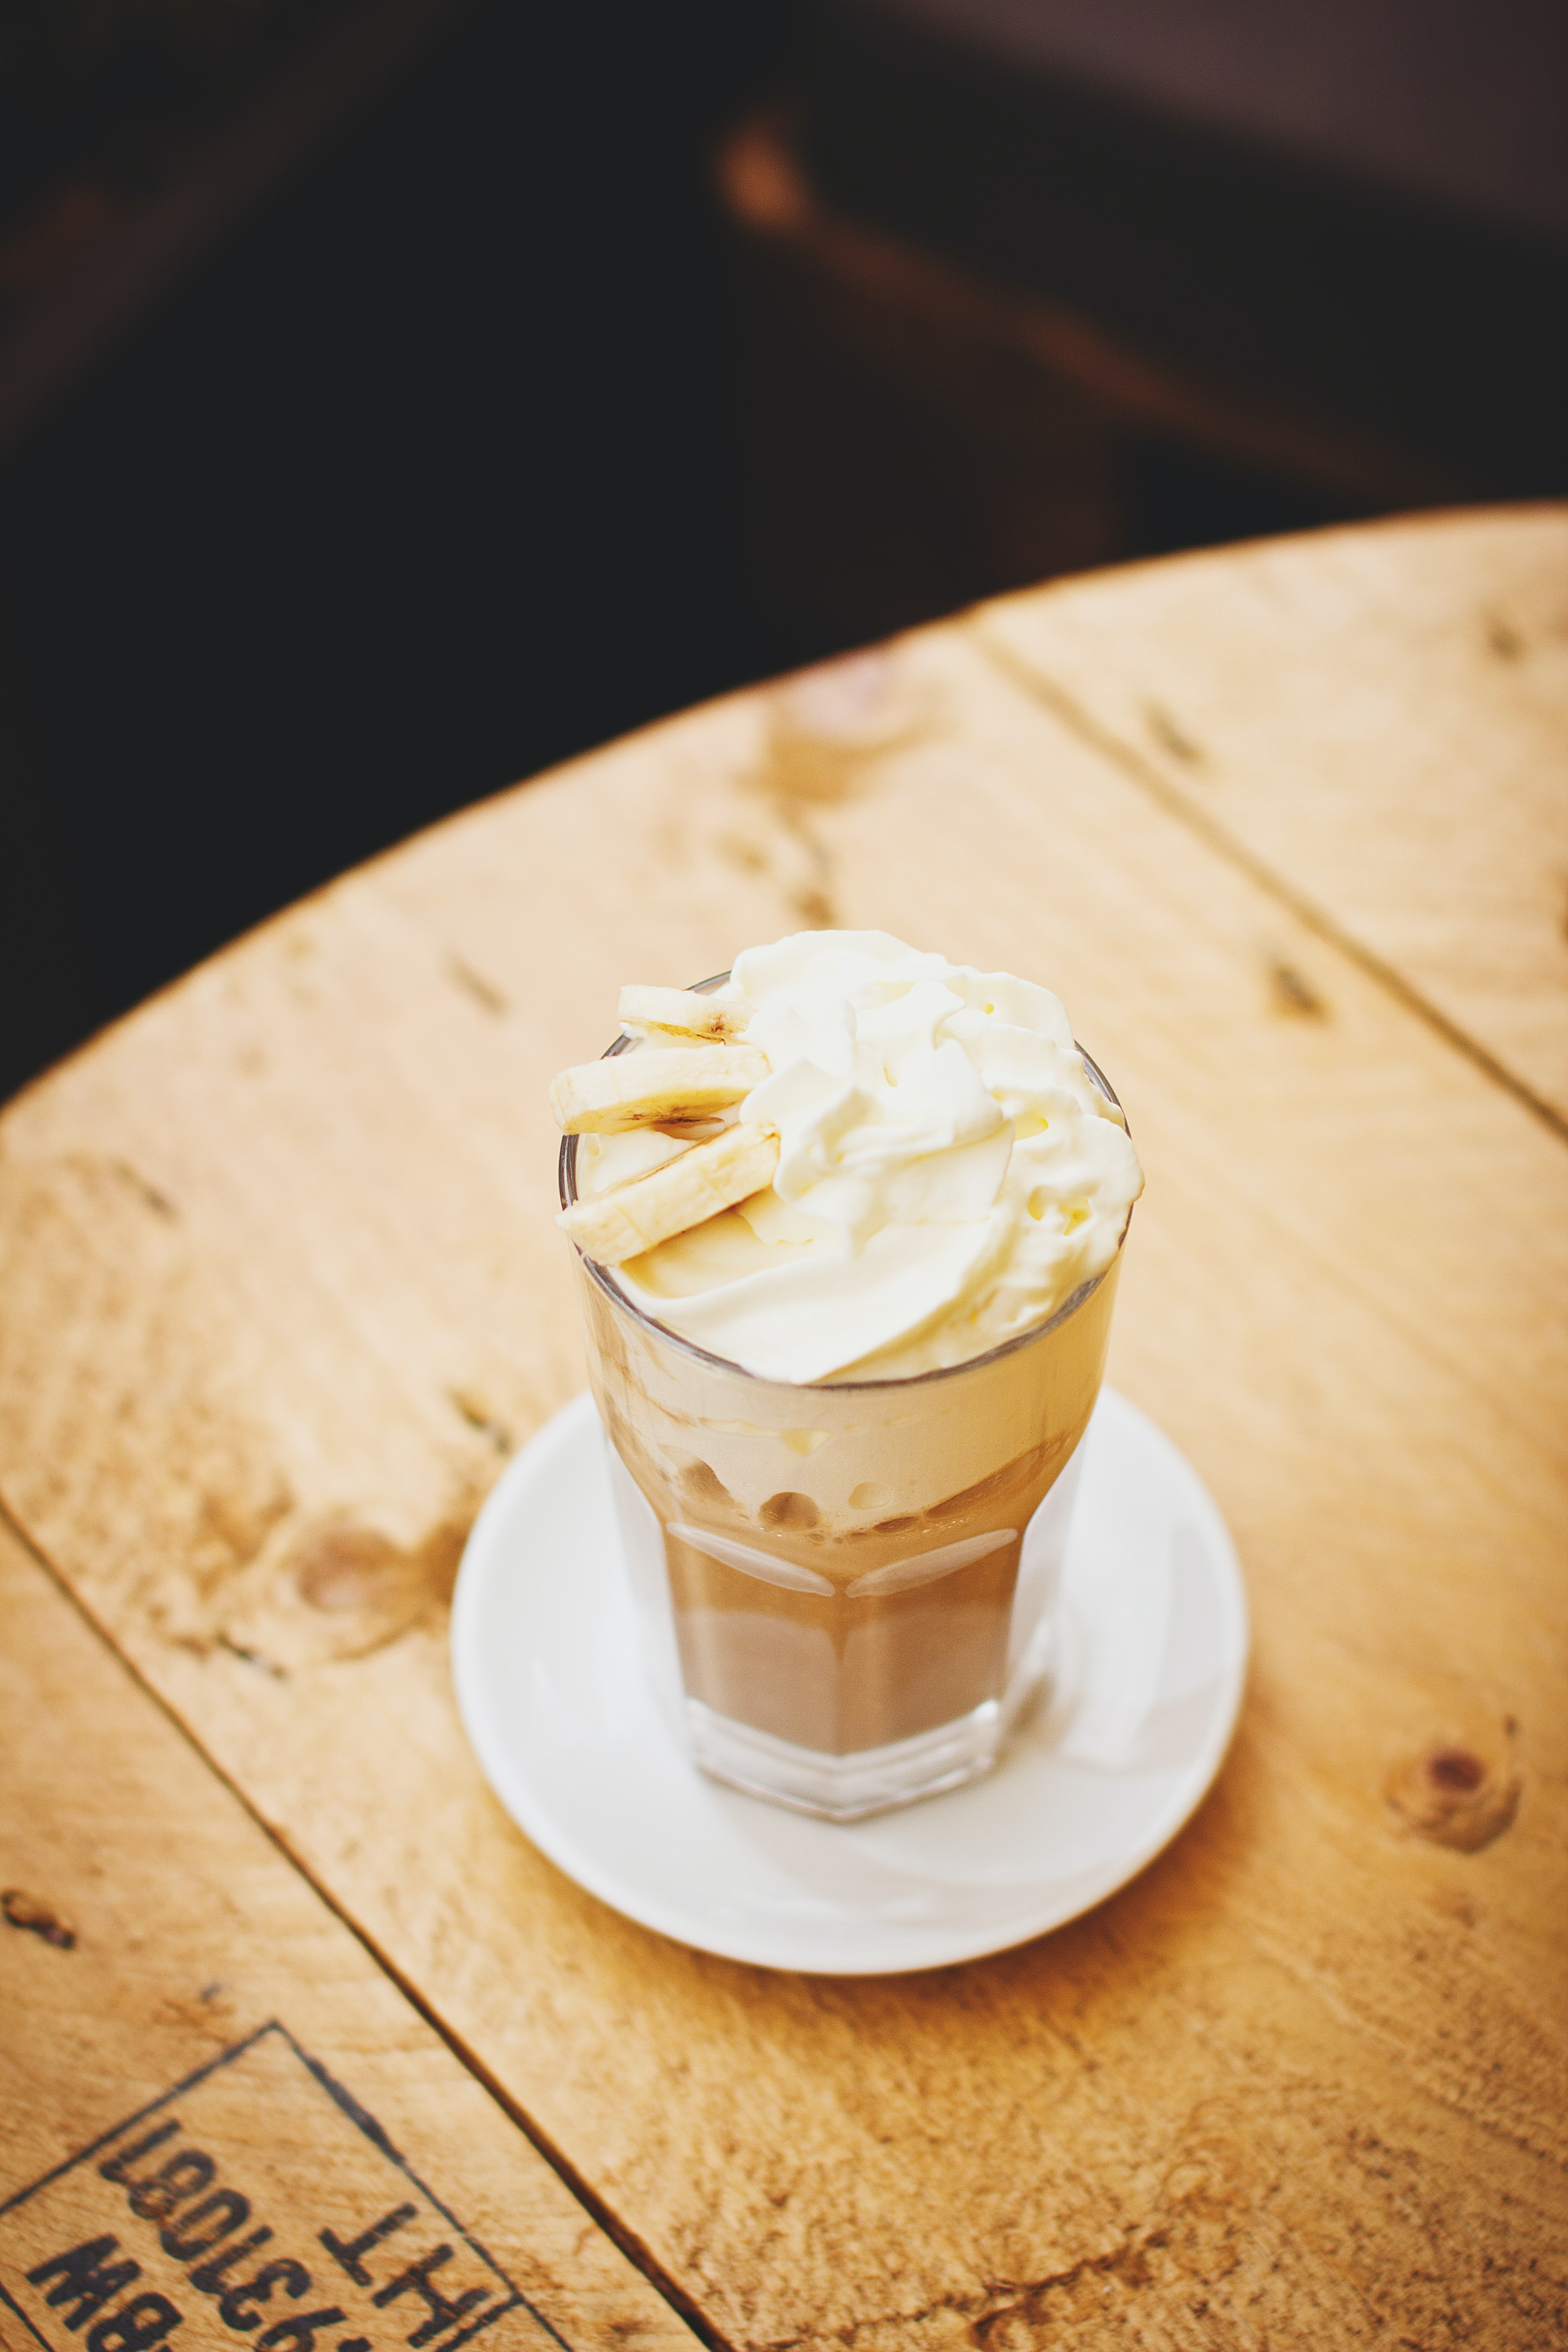 Coffee drink with whipped cream and banana sits on a cafe table